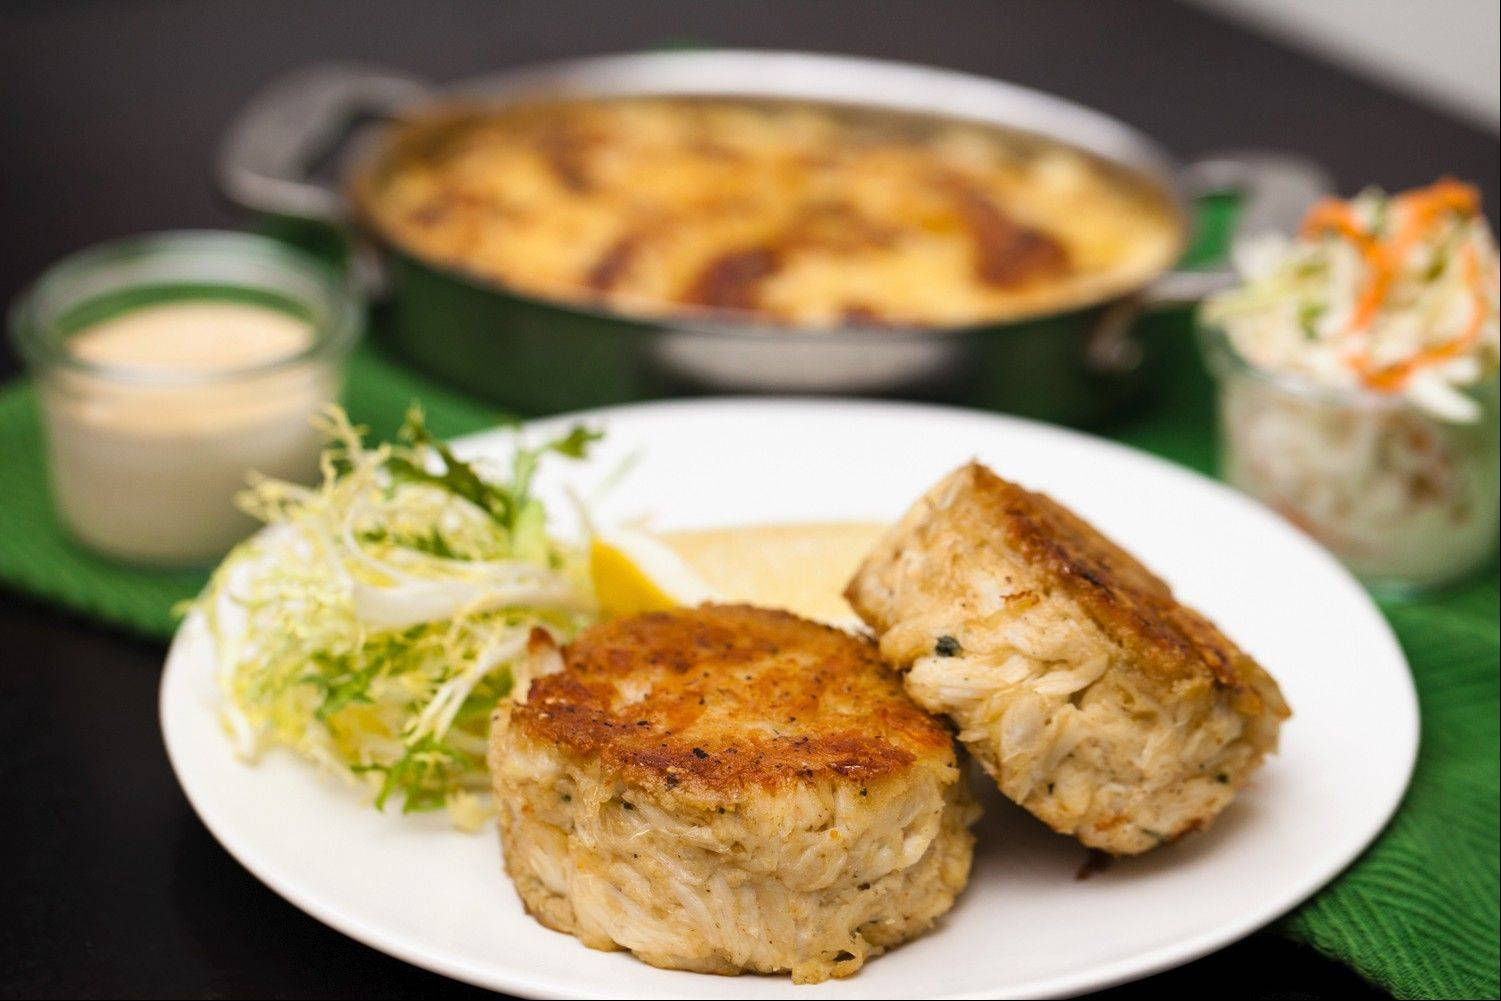 Crab cakes are just one of the featured dishes at Shaw's Crab House in Schaumburg during Chicago Restaurant Week.